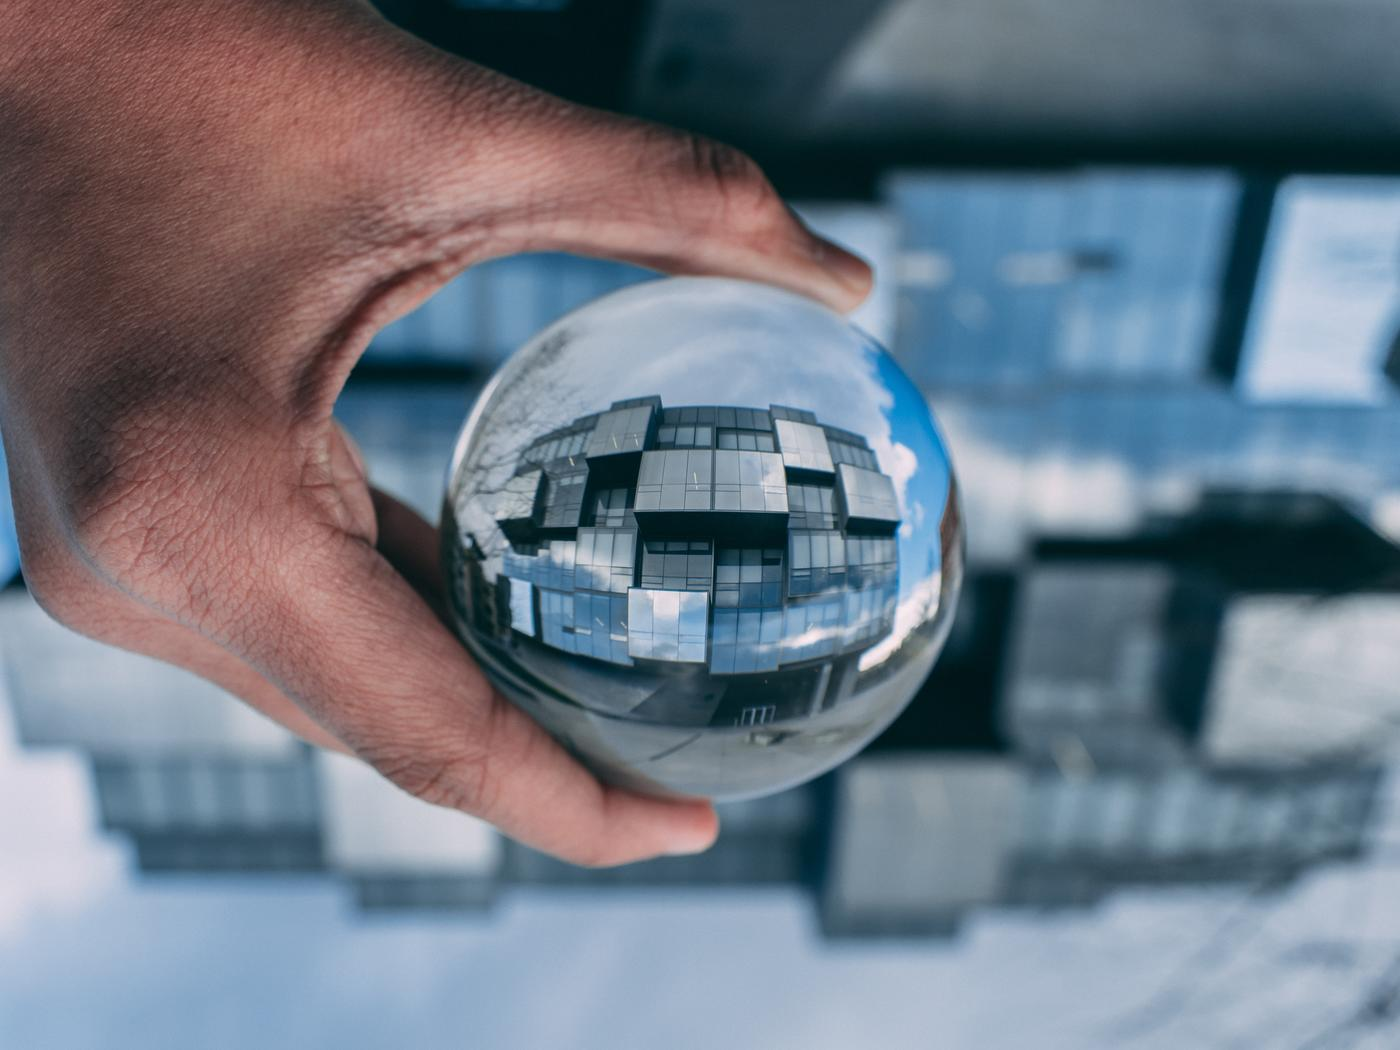 lensball perspective building holding hand